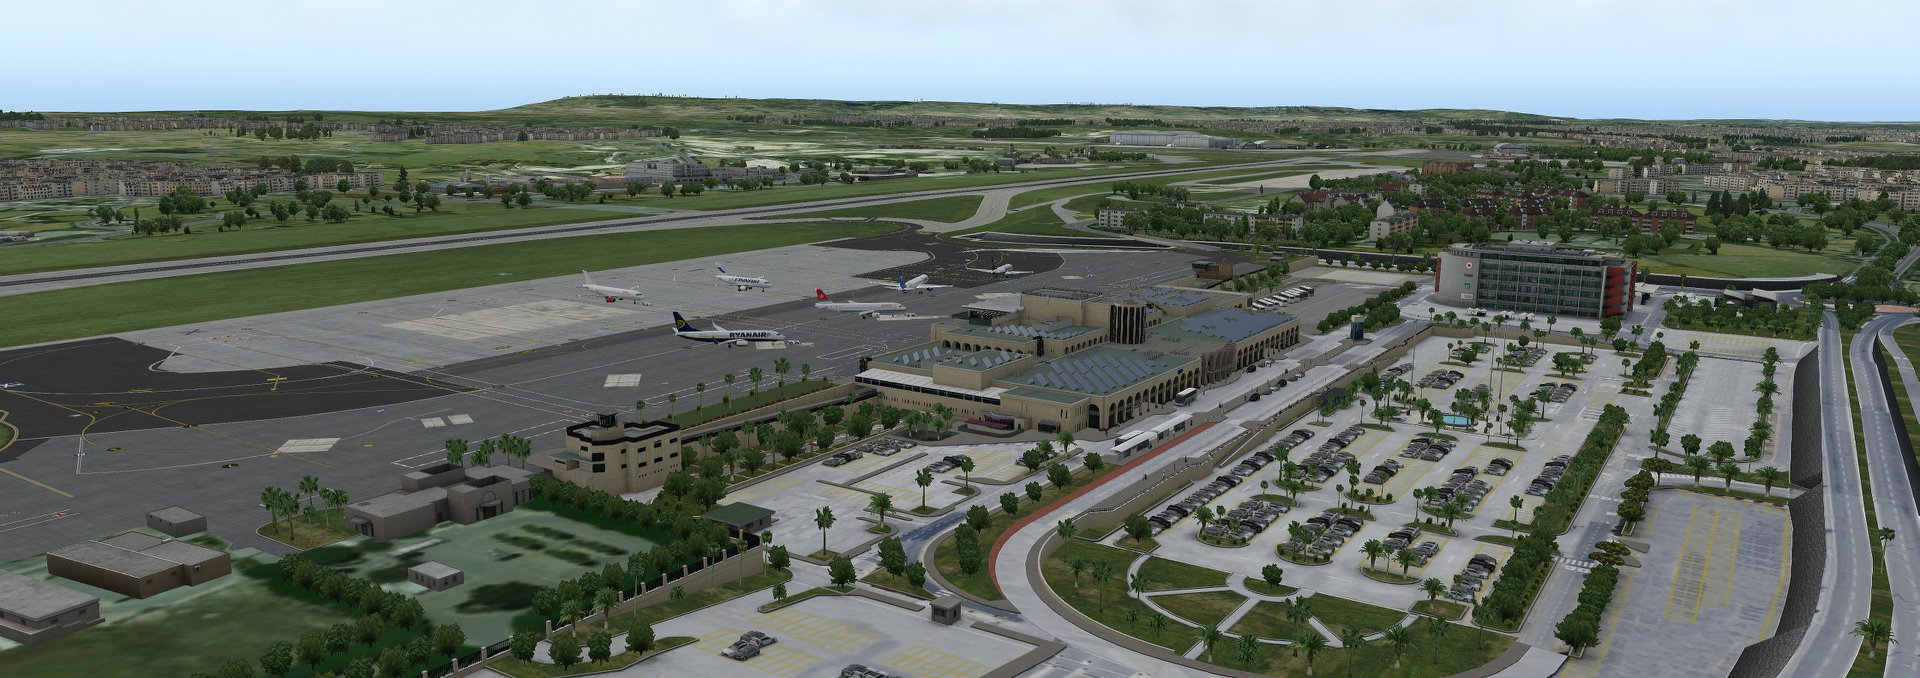 Previews of JustSim's Malta Airport (LMML) for X-Plane 11 – FSElite